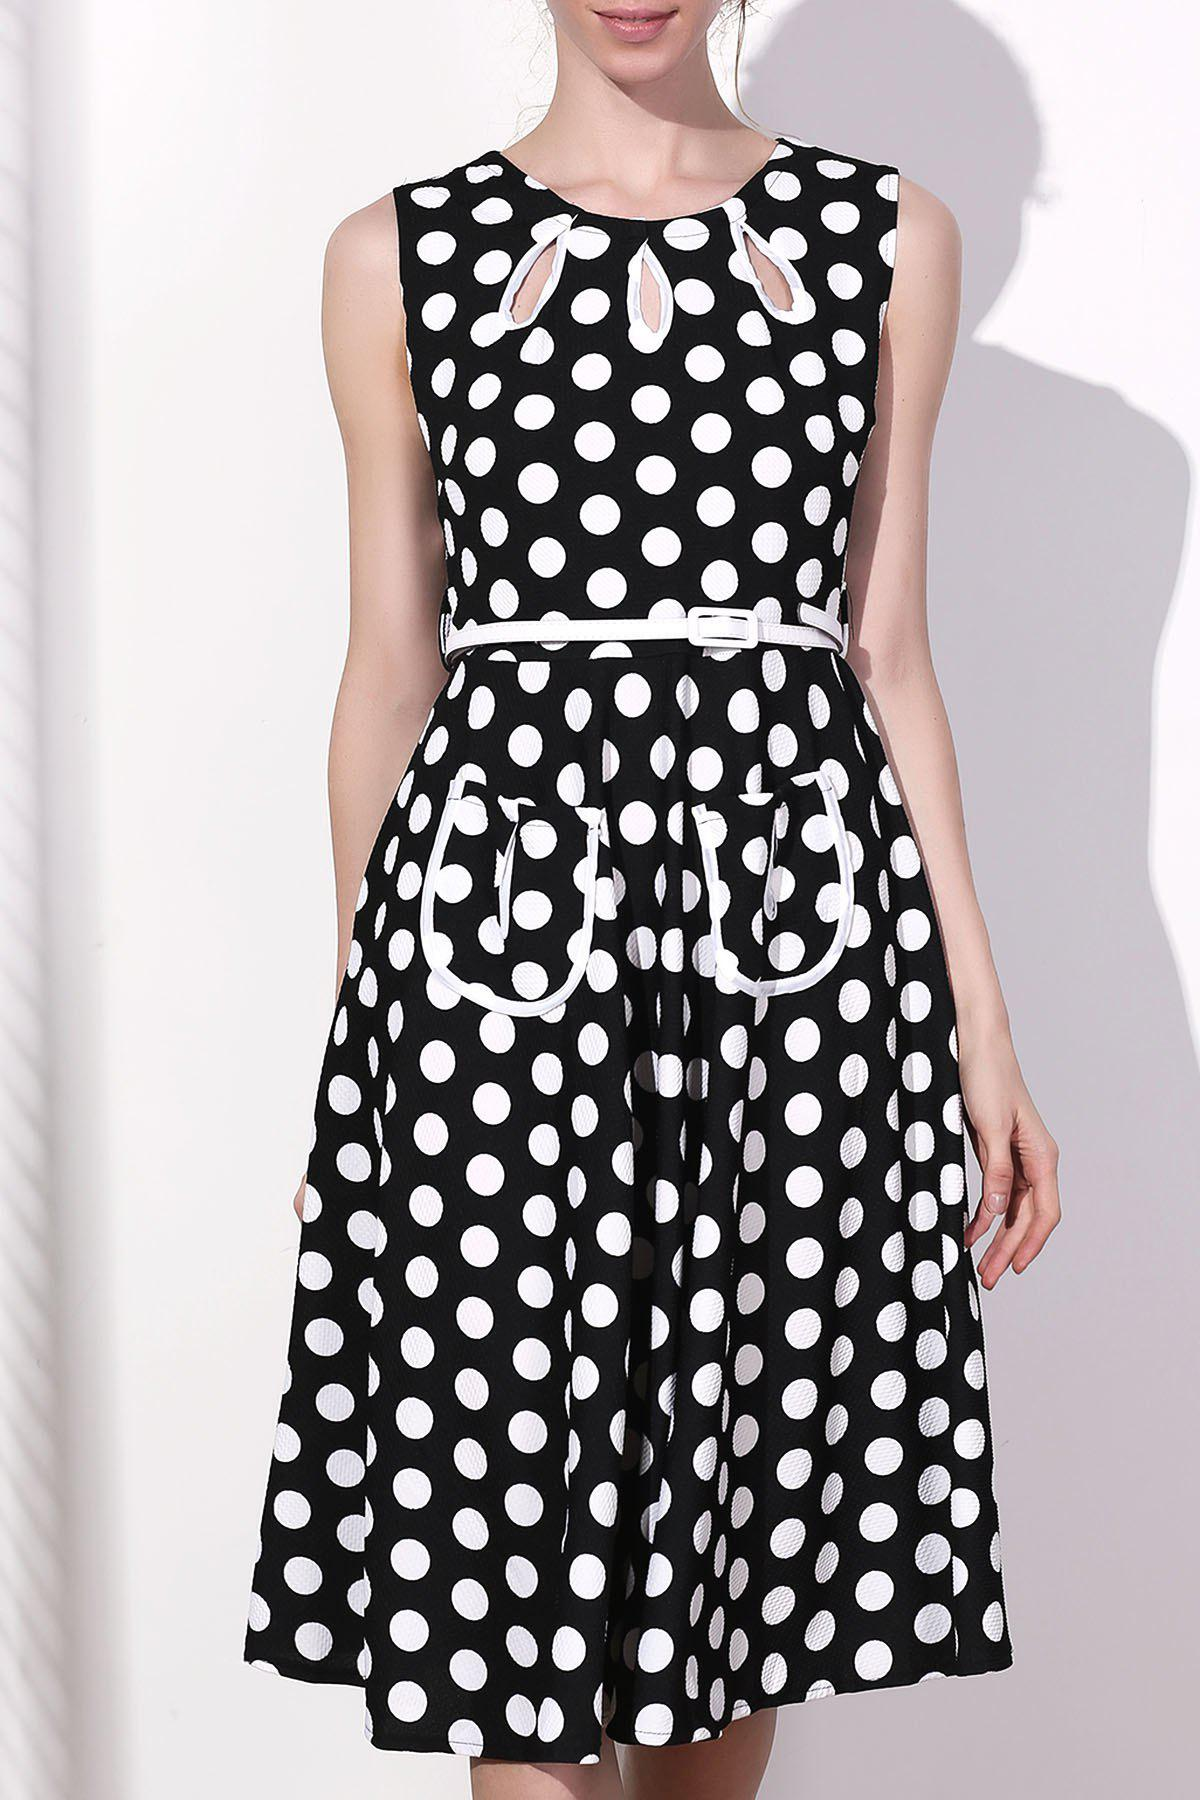 Fancy Vintage Round Collar Polka Dot Print Sleeveless Dress For Women